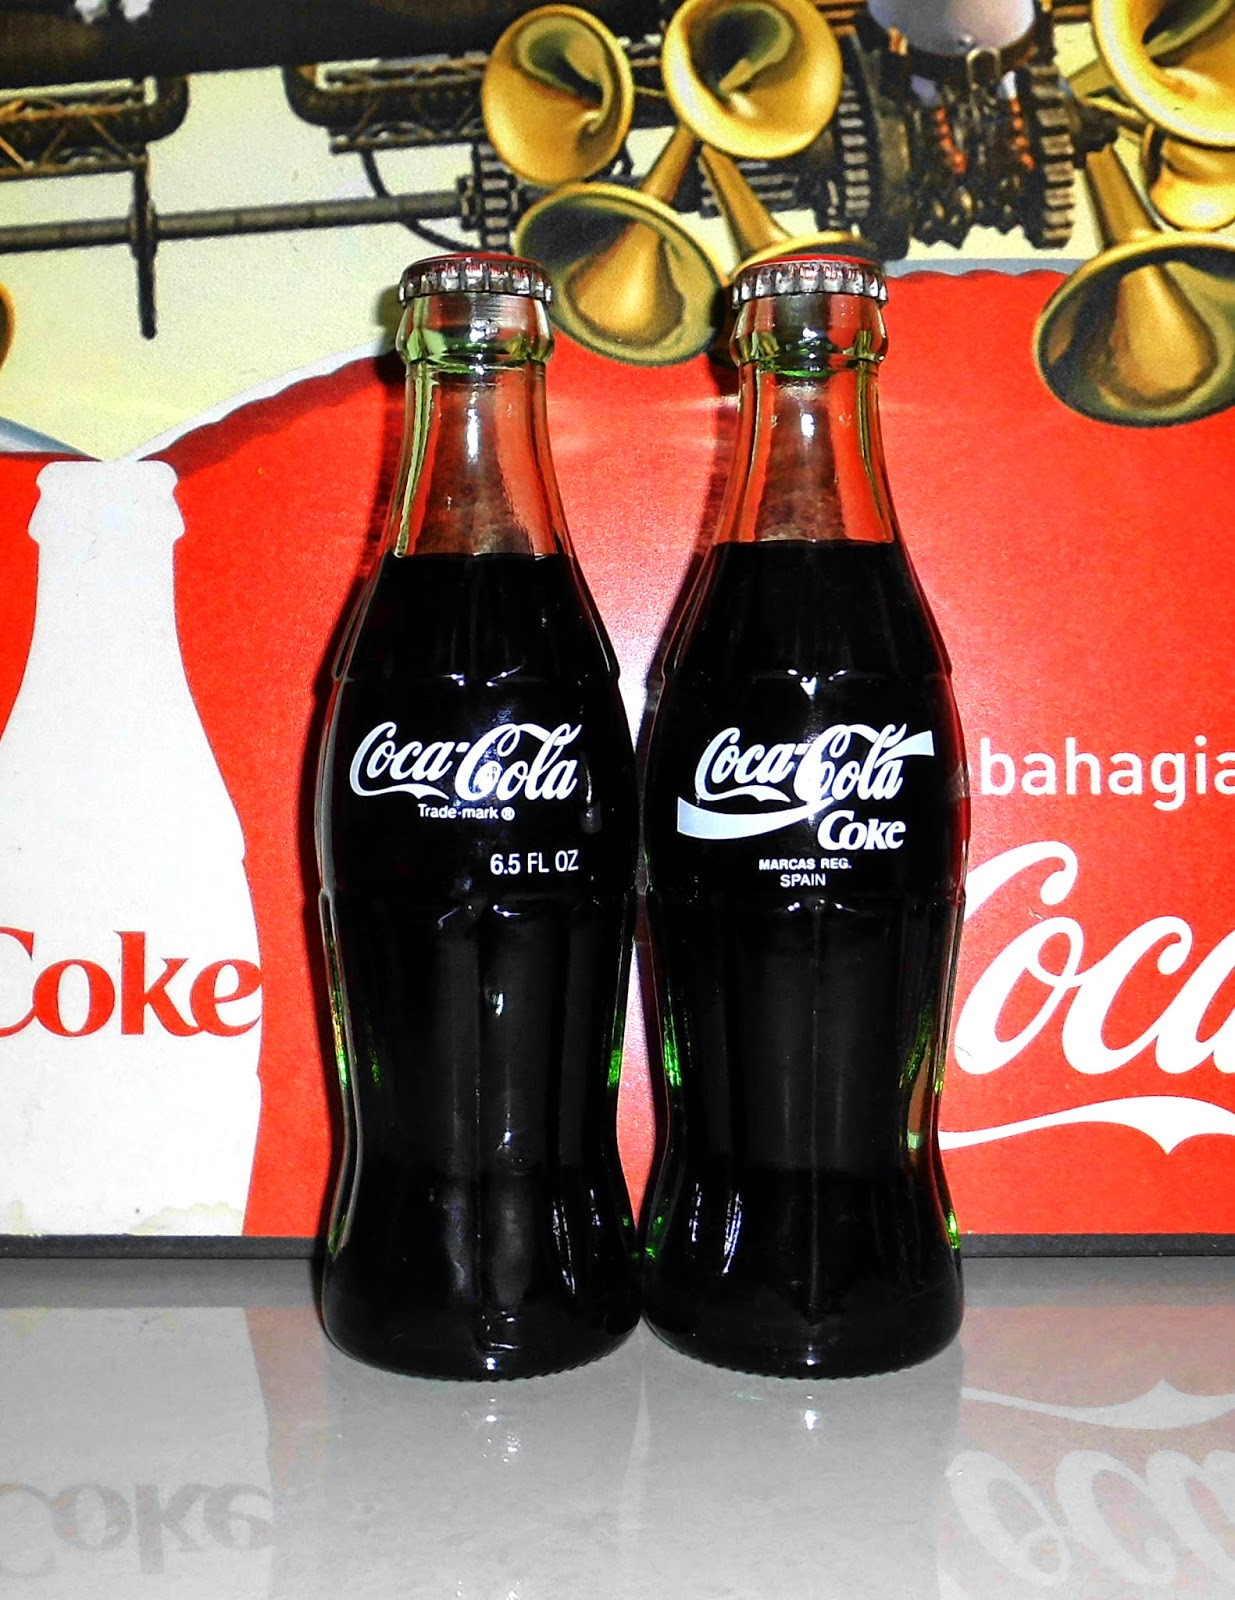 internationalizing the cola wars a Share on facebook, opens a new window share on twitter, opens a new window share on linkedin share by email, opens mail client production and distribution of csds concentr ate producers bottlers retail chains suppliers 9 11retail channels distribution 95 234 supermarkets fountain outlets.